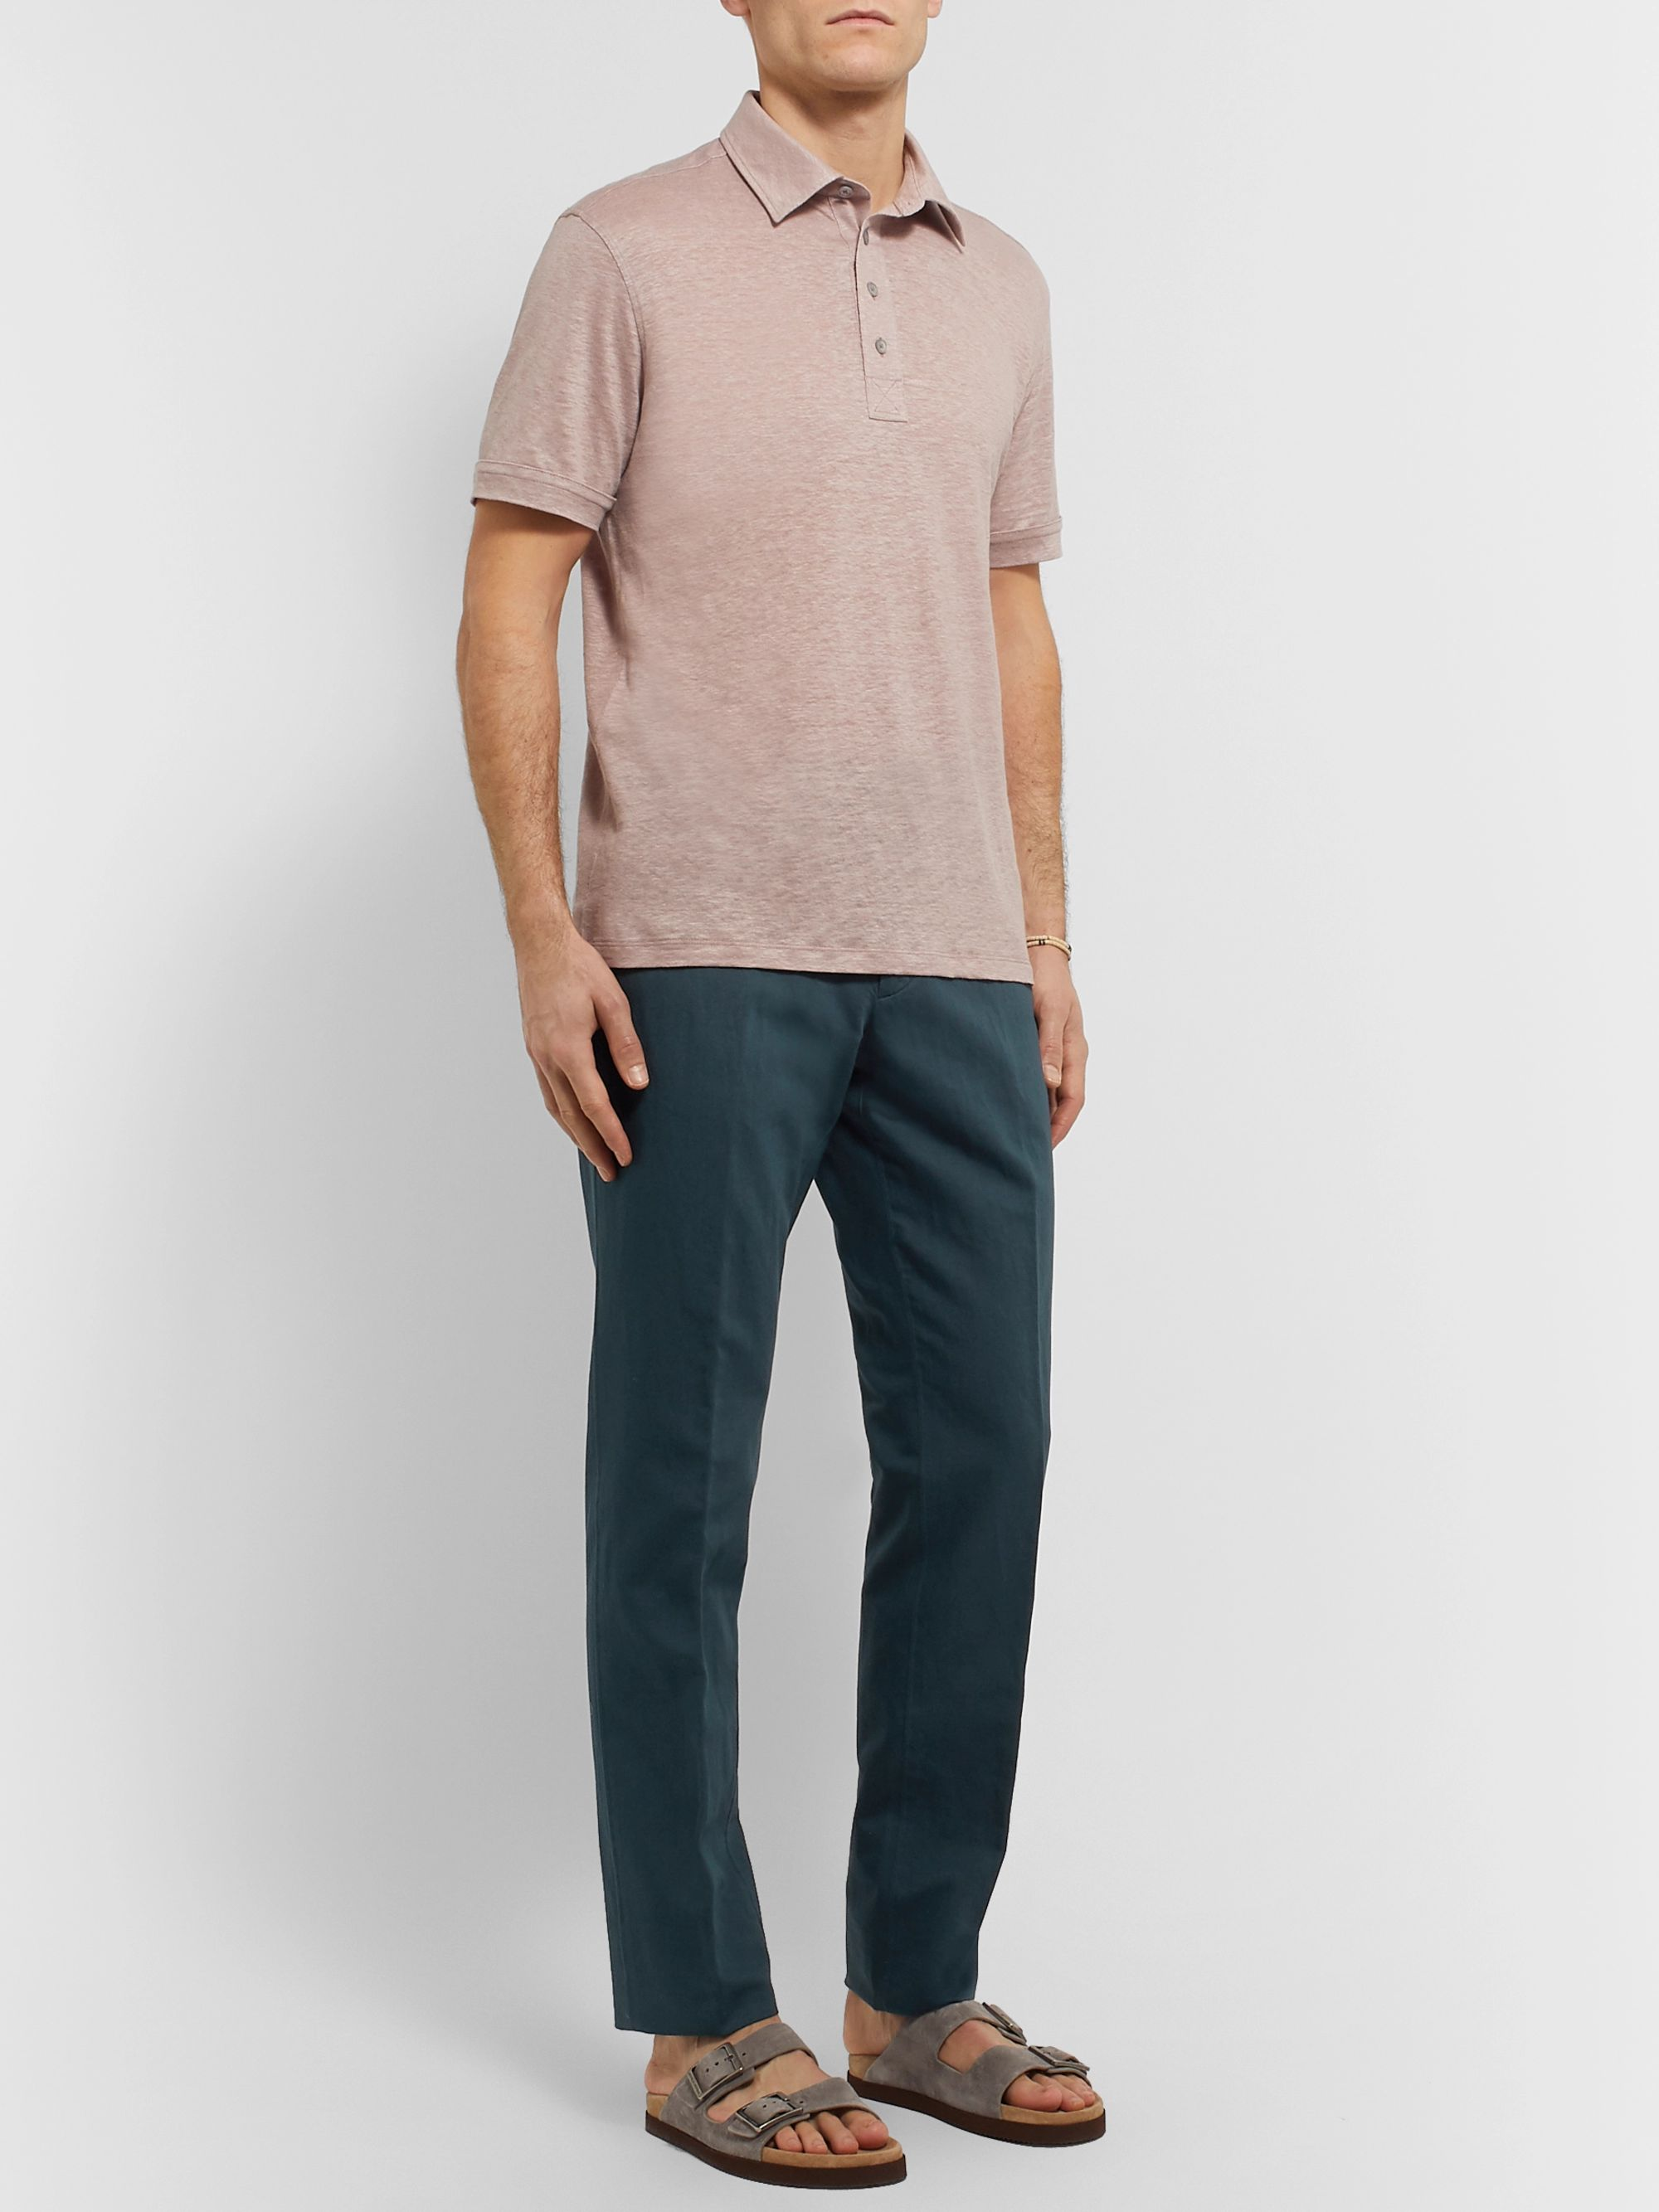 Ermenegildo Zegna Teal Cotton and Linen-Blend Chinos